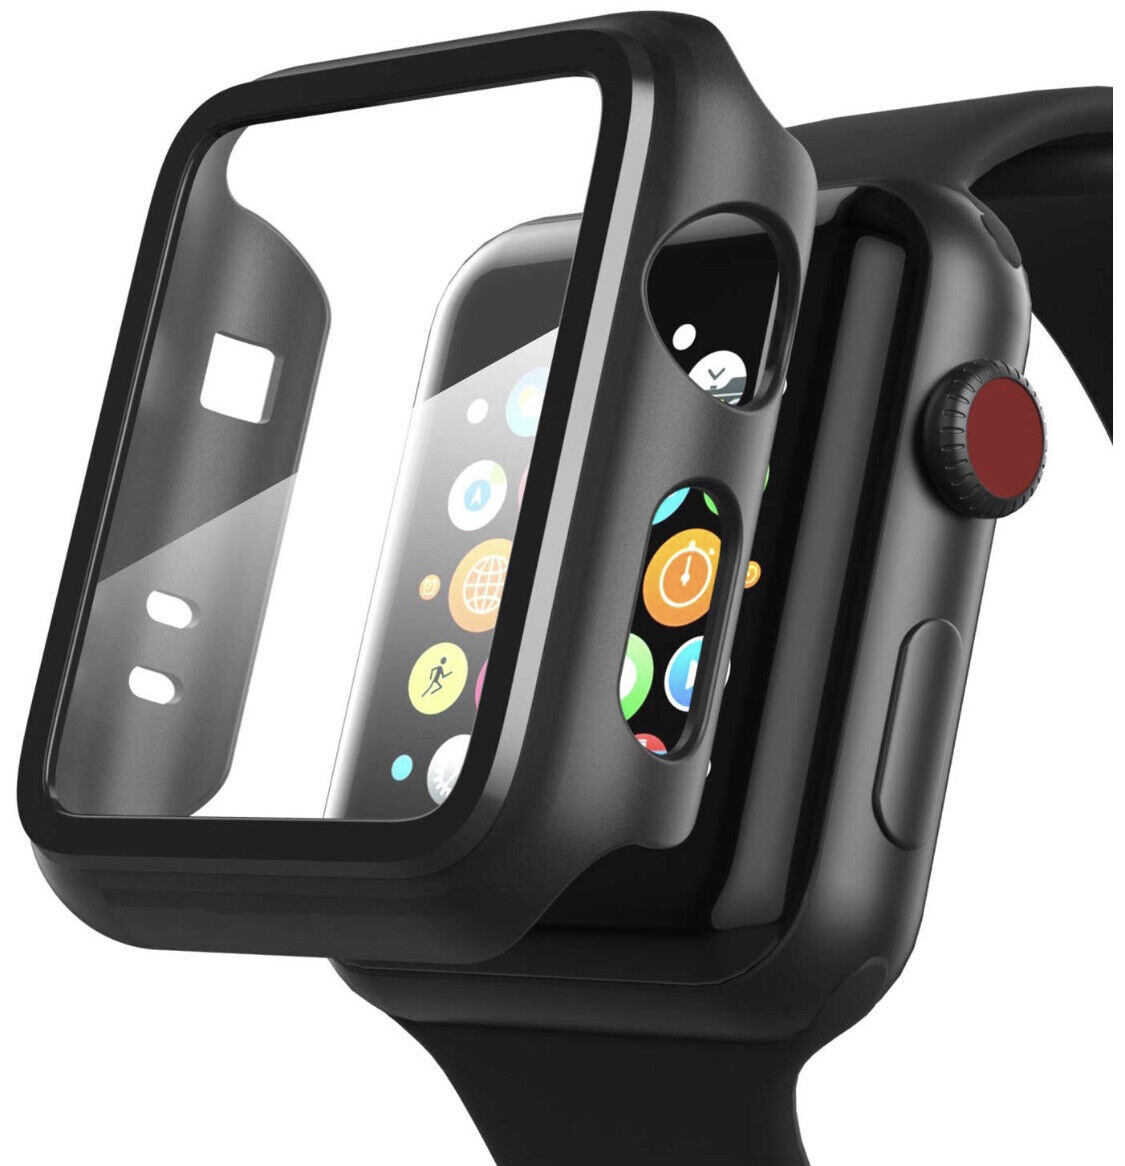 iWatch Apple Watch Series 4 3 2 1 Hybrid Protective Case Full Cover With Screen Cases, Covers & Skins